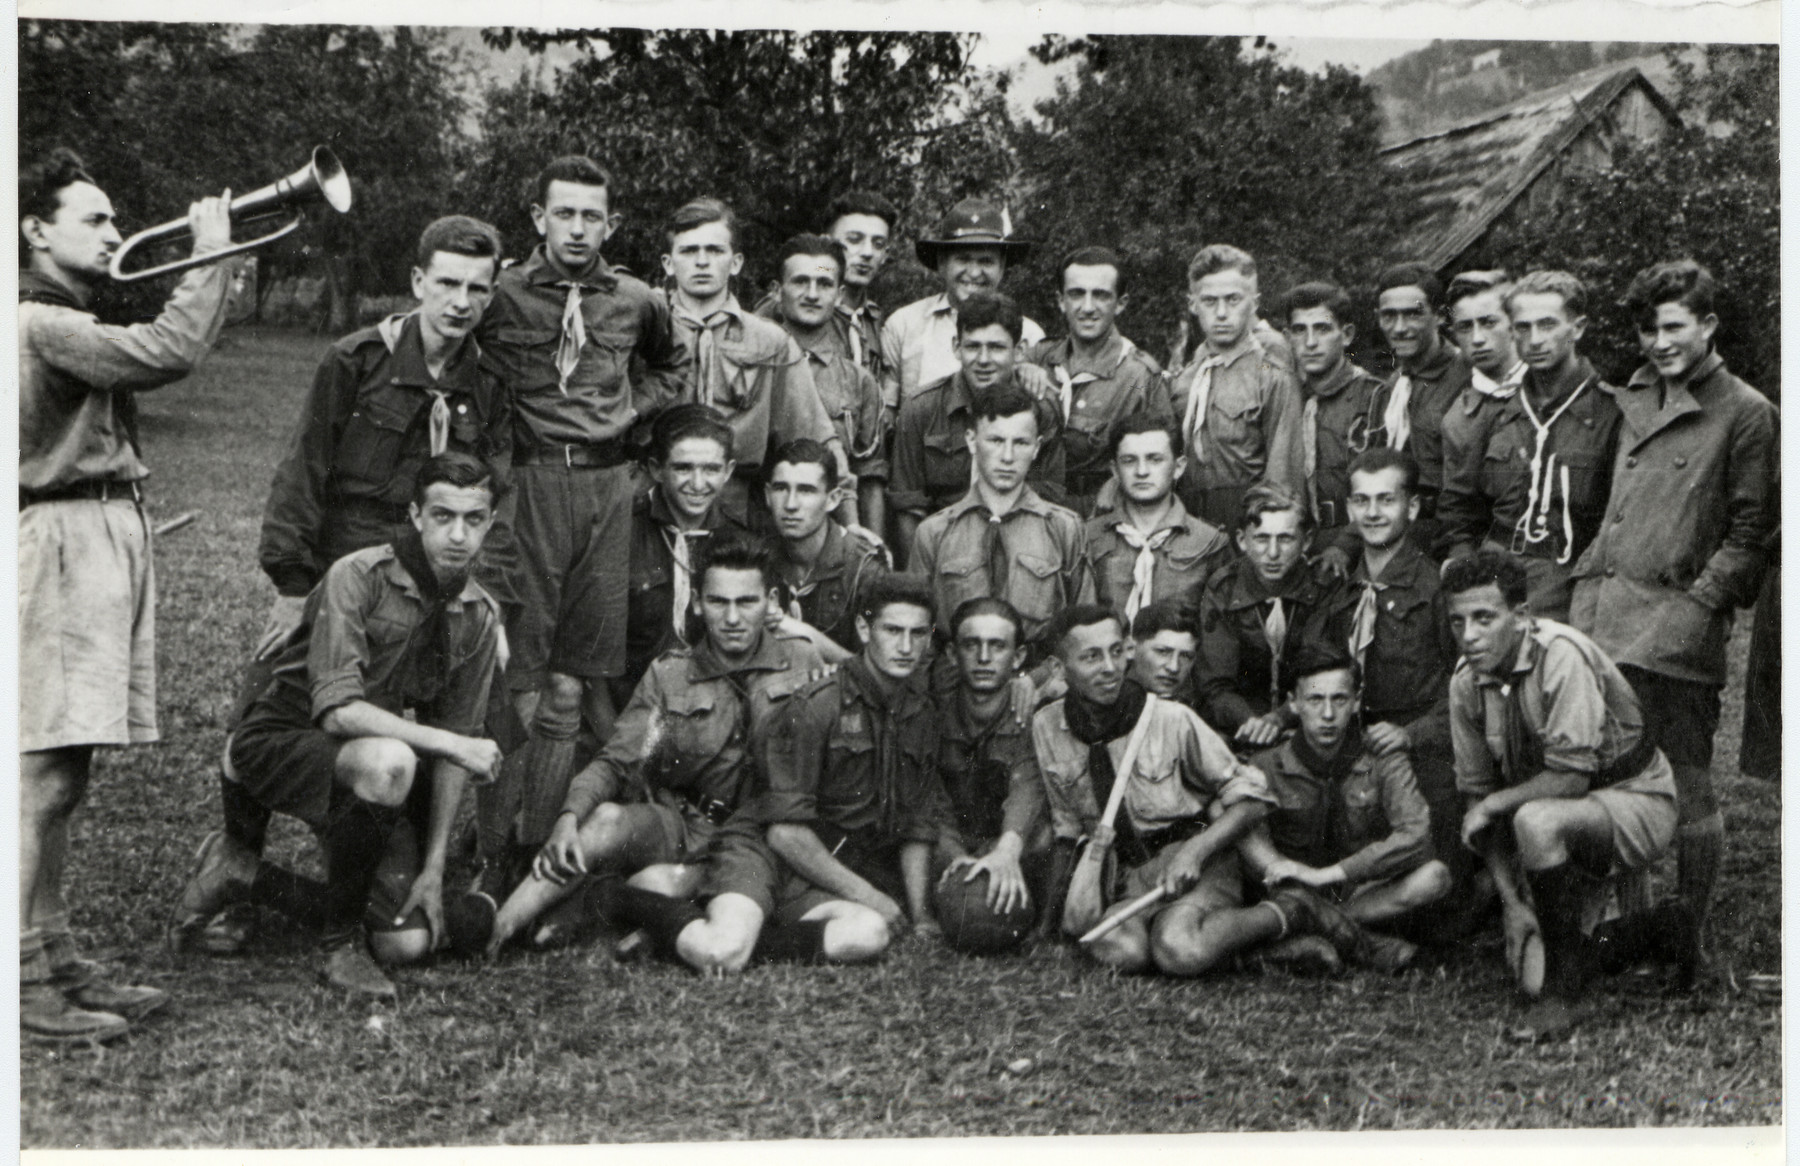 Group portrait of instructors of the Hanoar Hatzioni Zionist Youth movement at a summer camp in Lvov.   Standing on the far left is Lerner.  Sitting in the front row are Izio Hibner (third from the left) and Natek Tunc (first from the right).  Also pictured is the donor's cousin Marceli Najder (standing center with a hat).